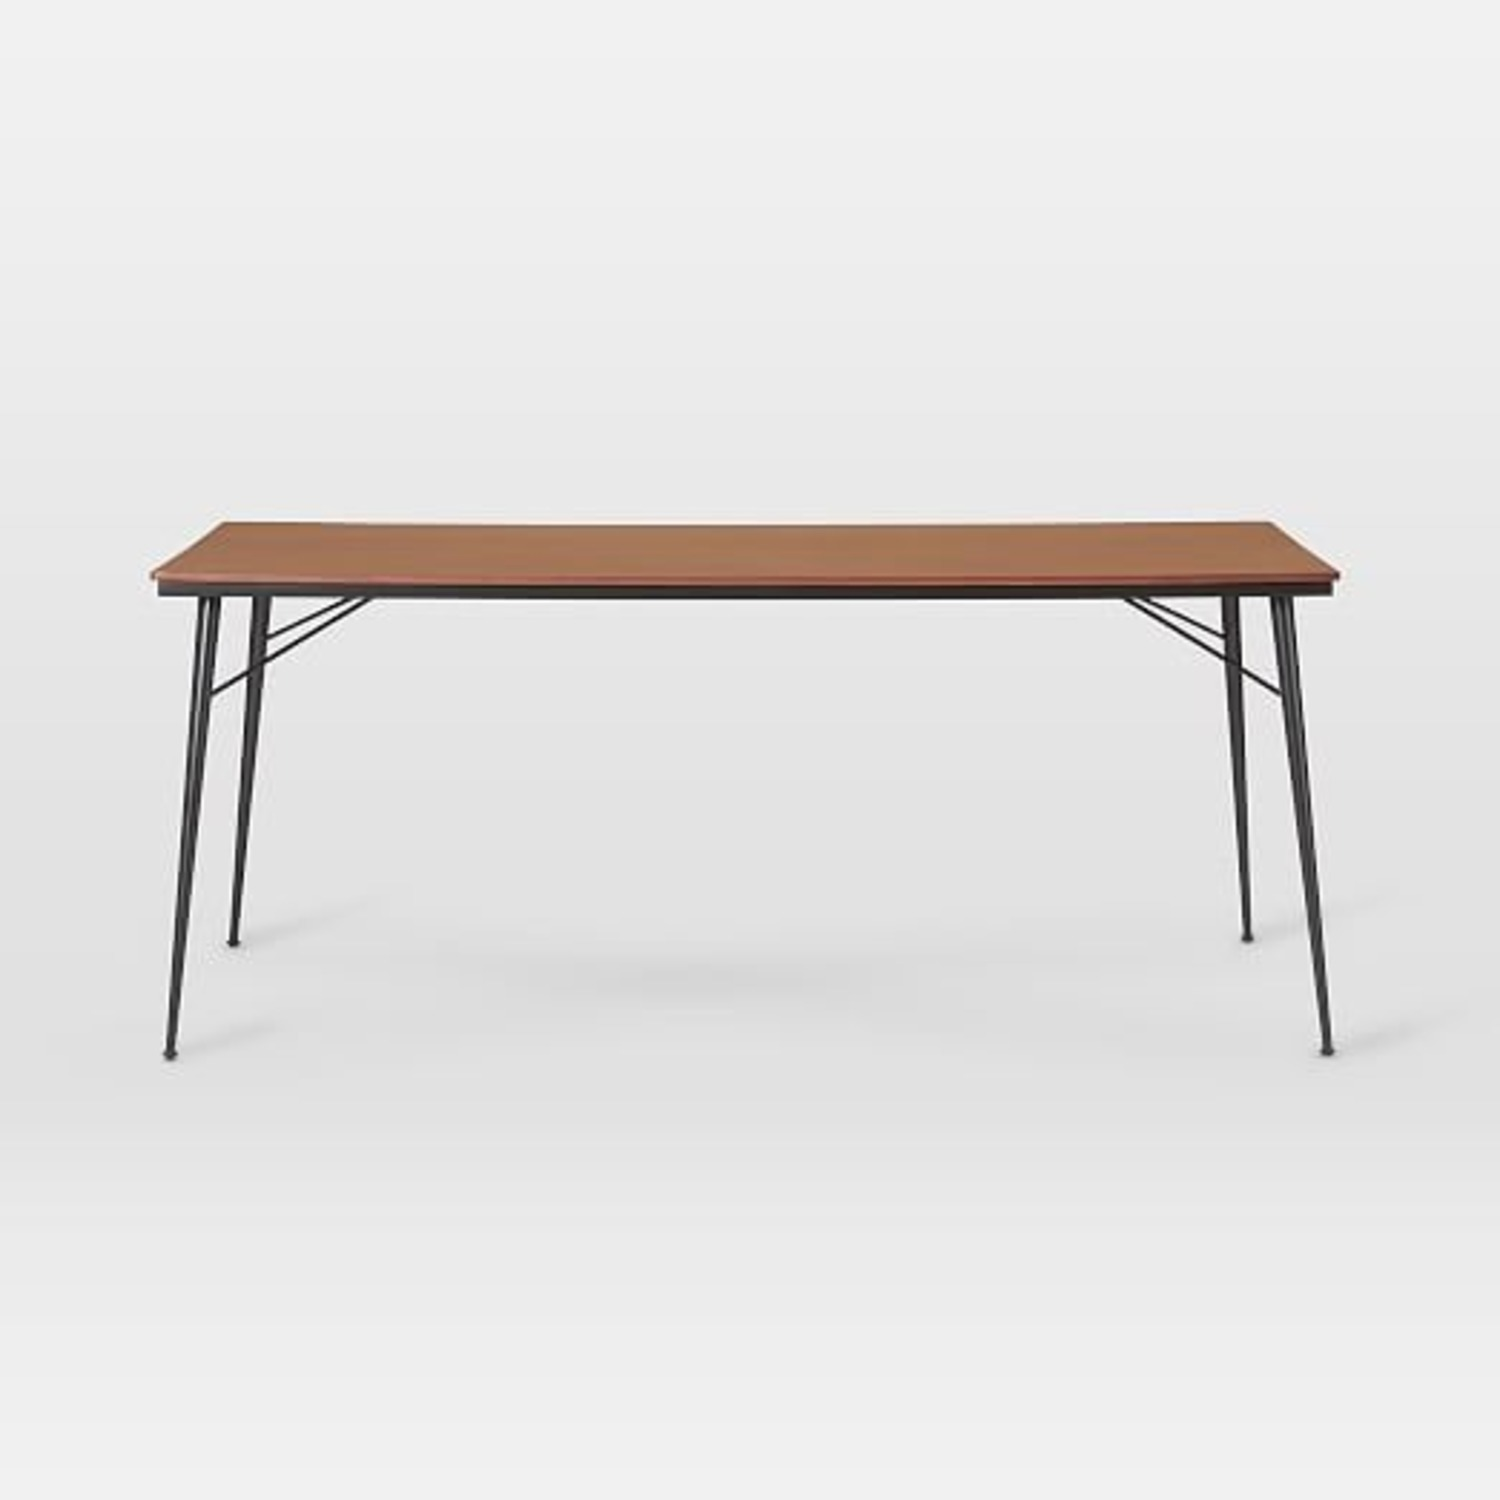 West Elm Self Pick up Table - image-1